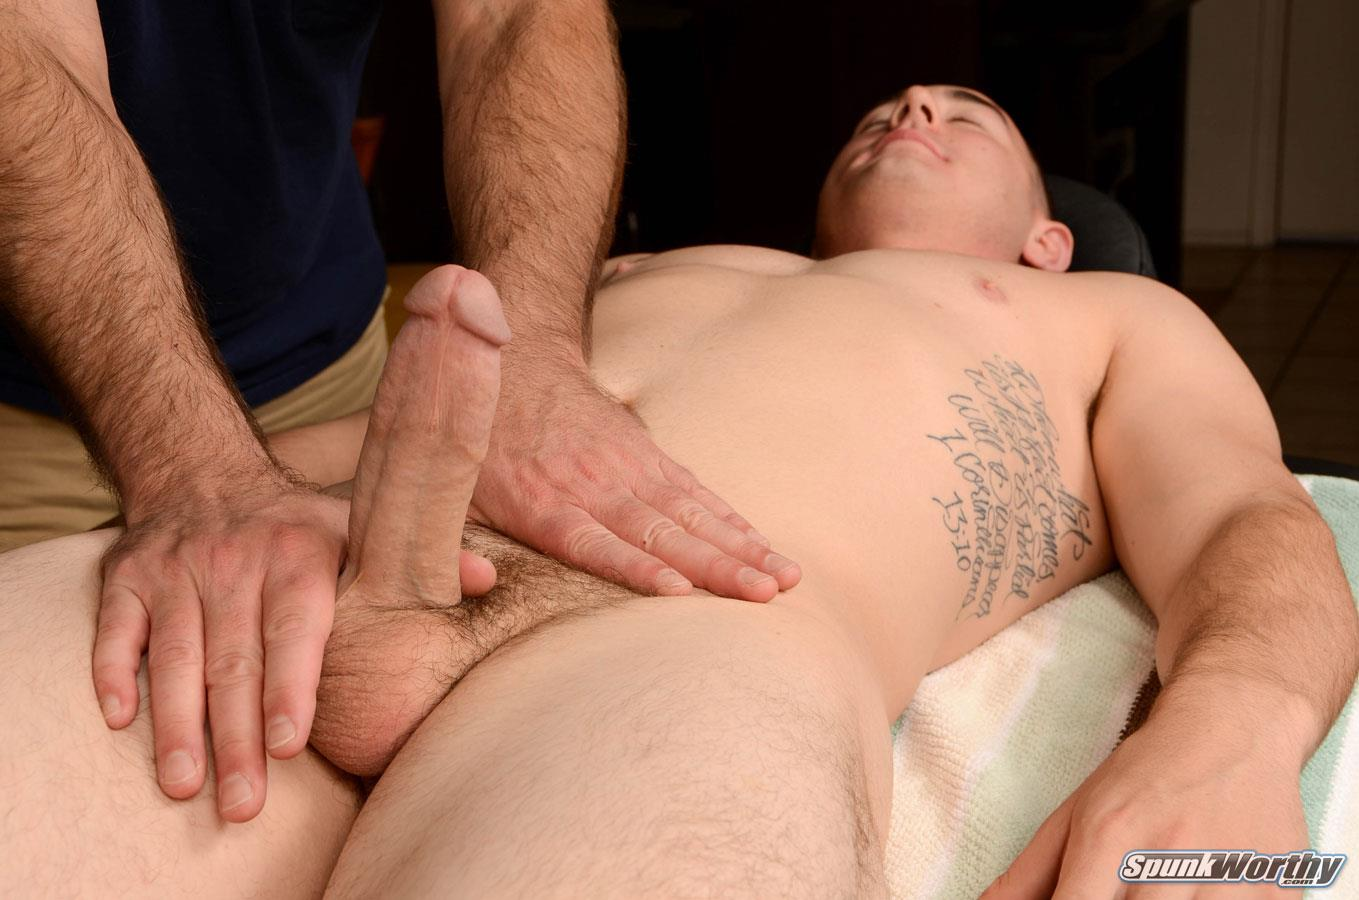 boy getting handjob